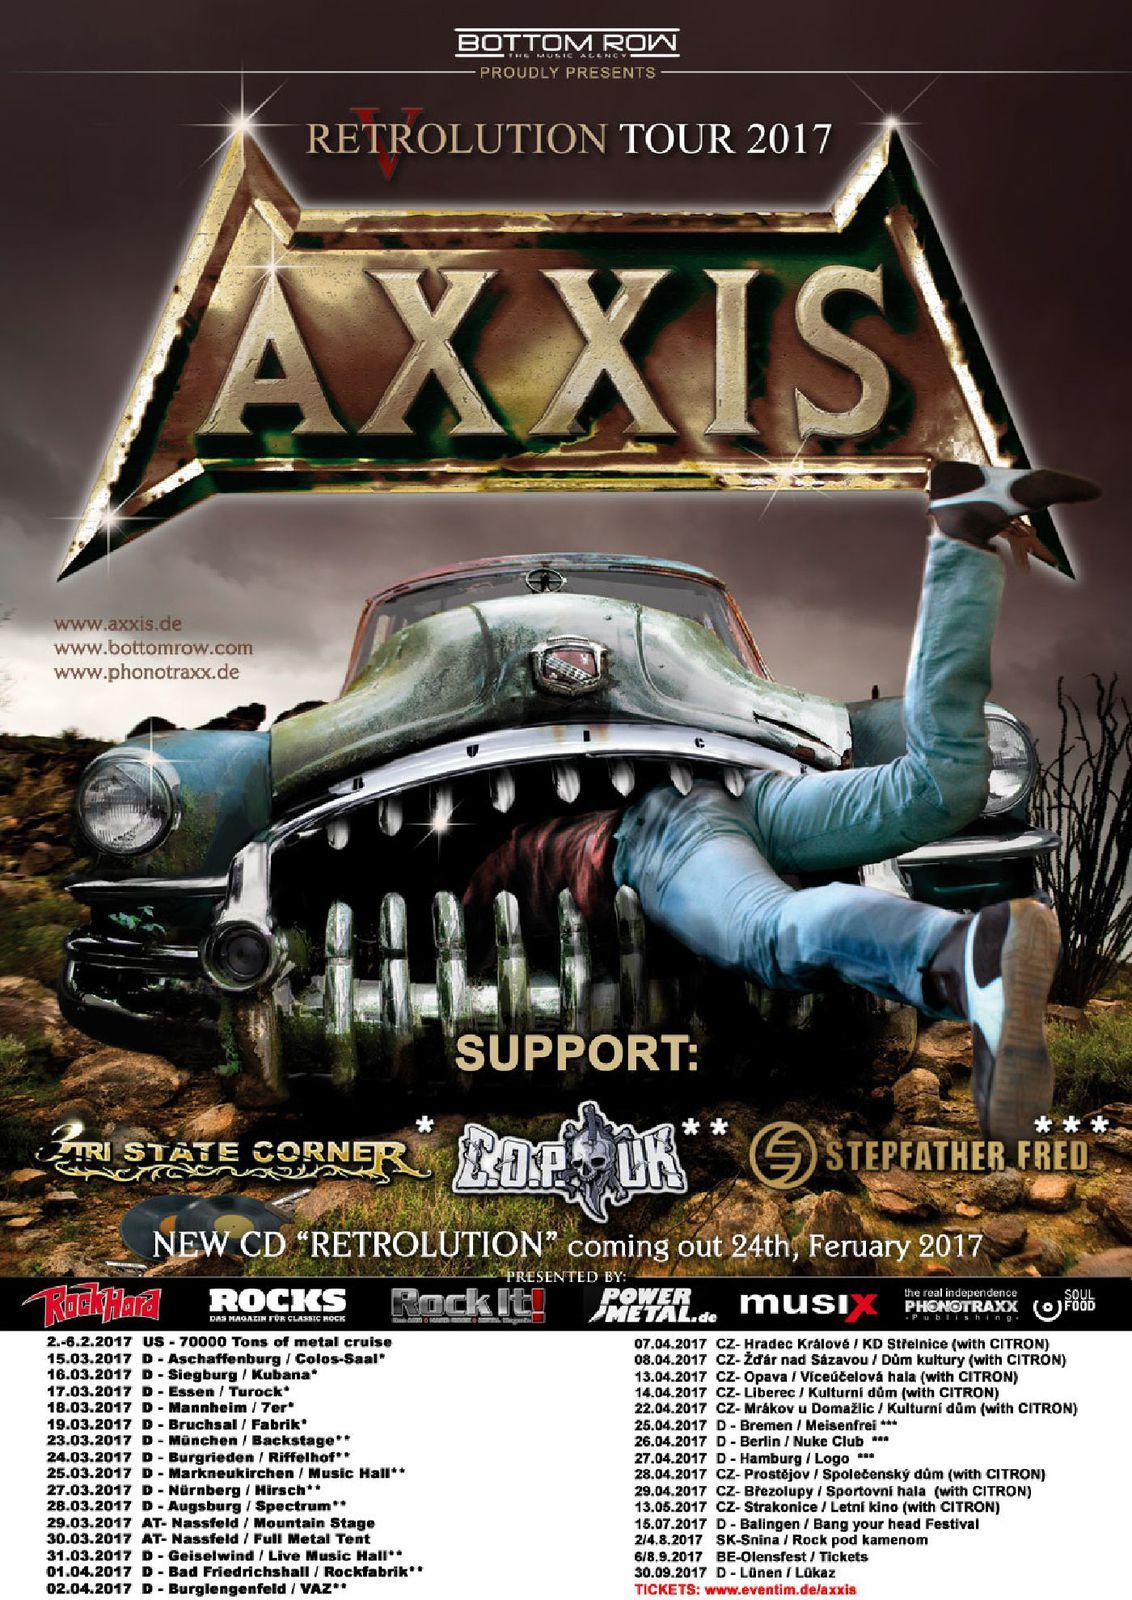 AXXIS tour dates 2017